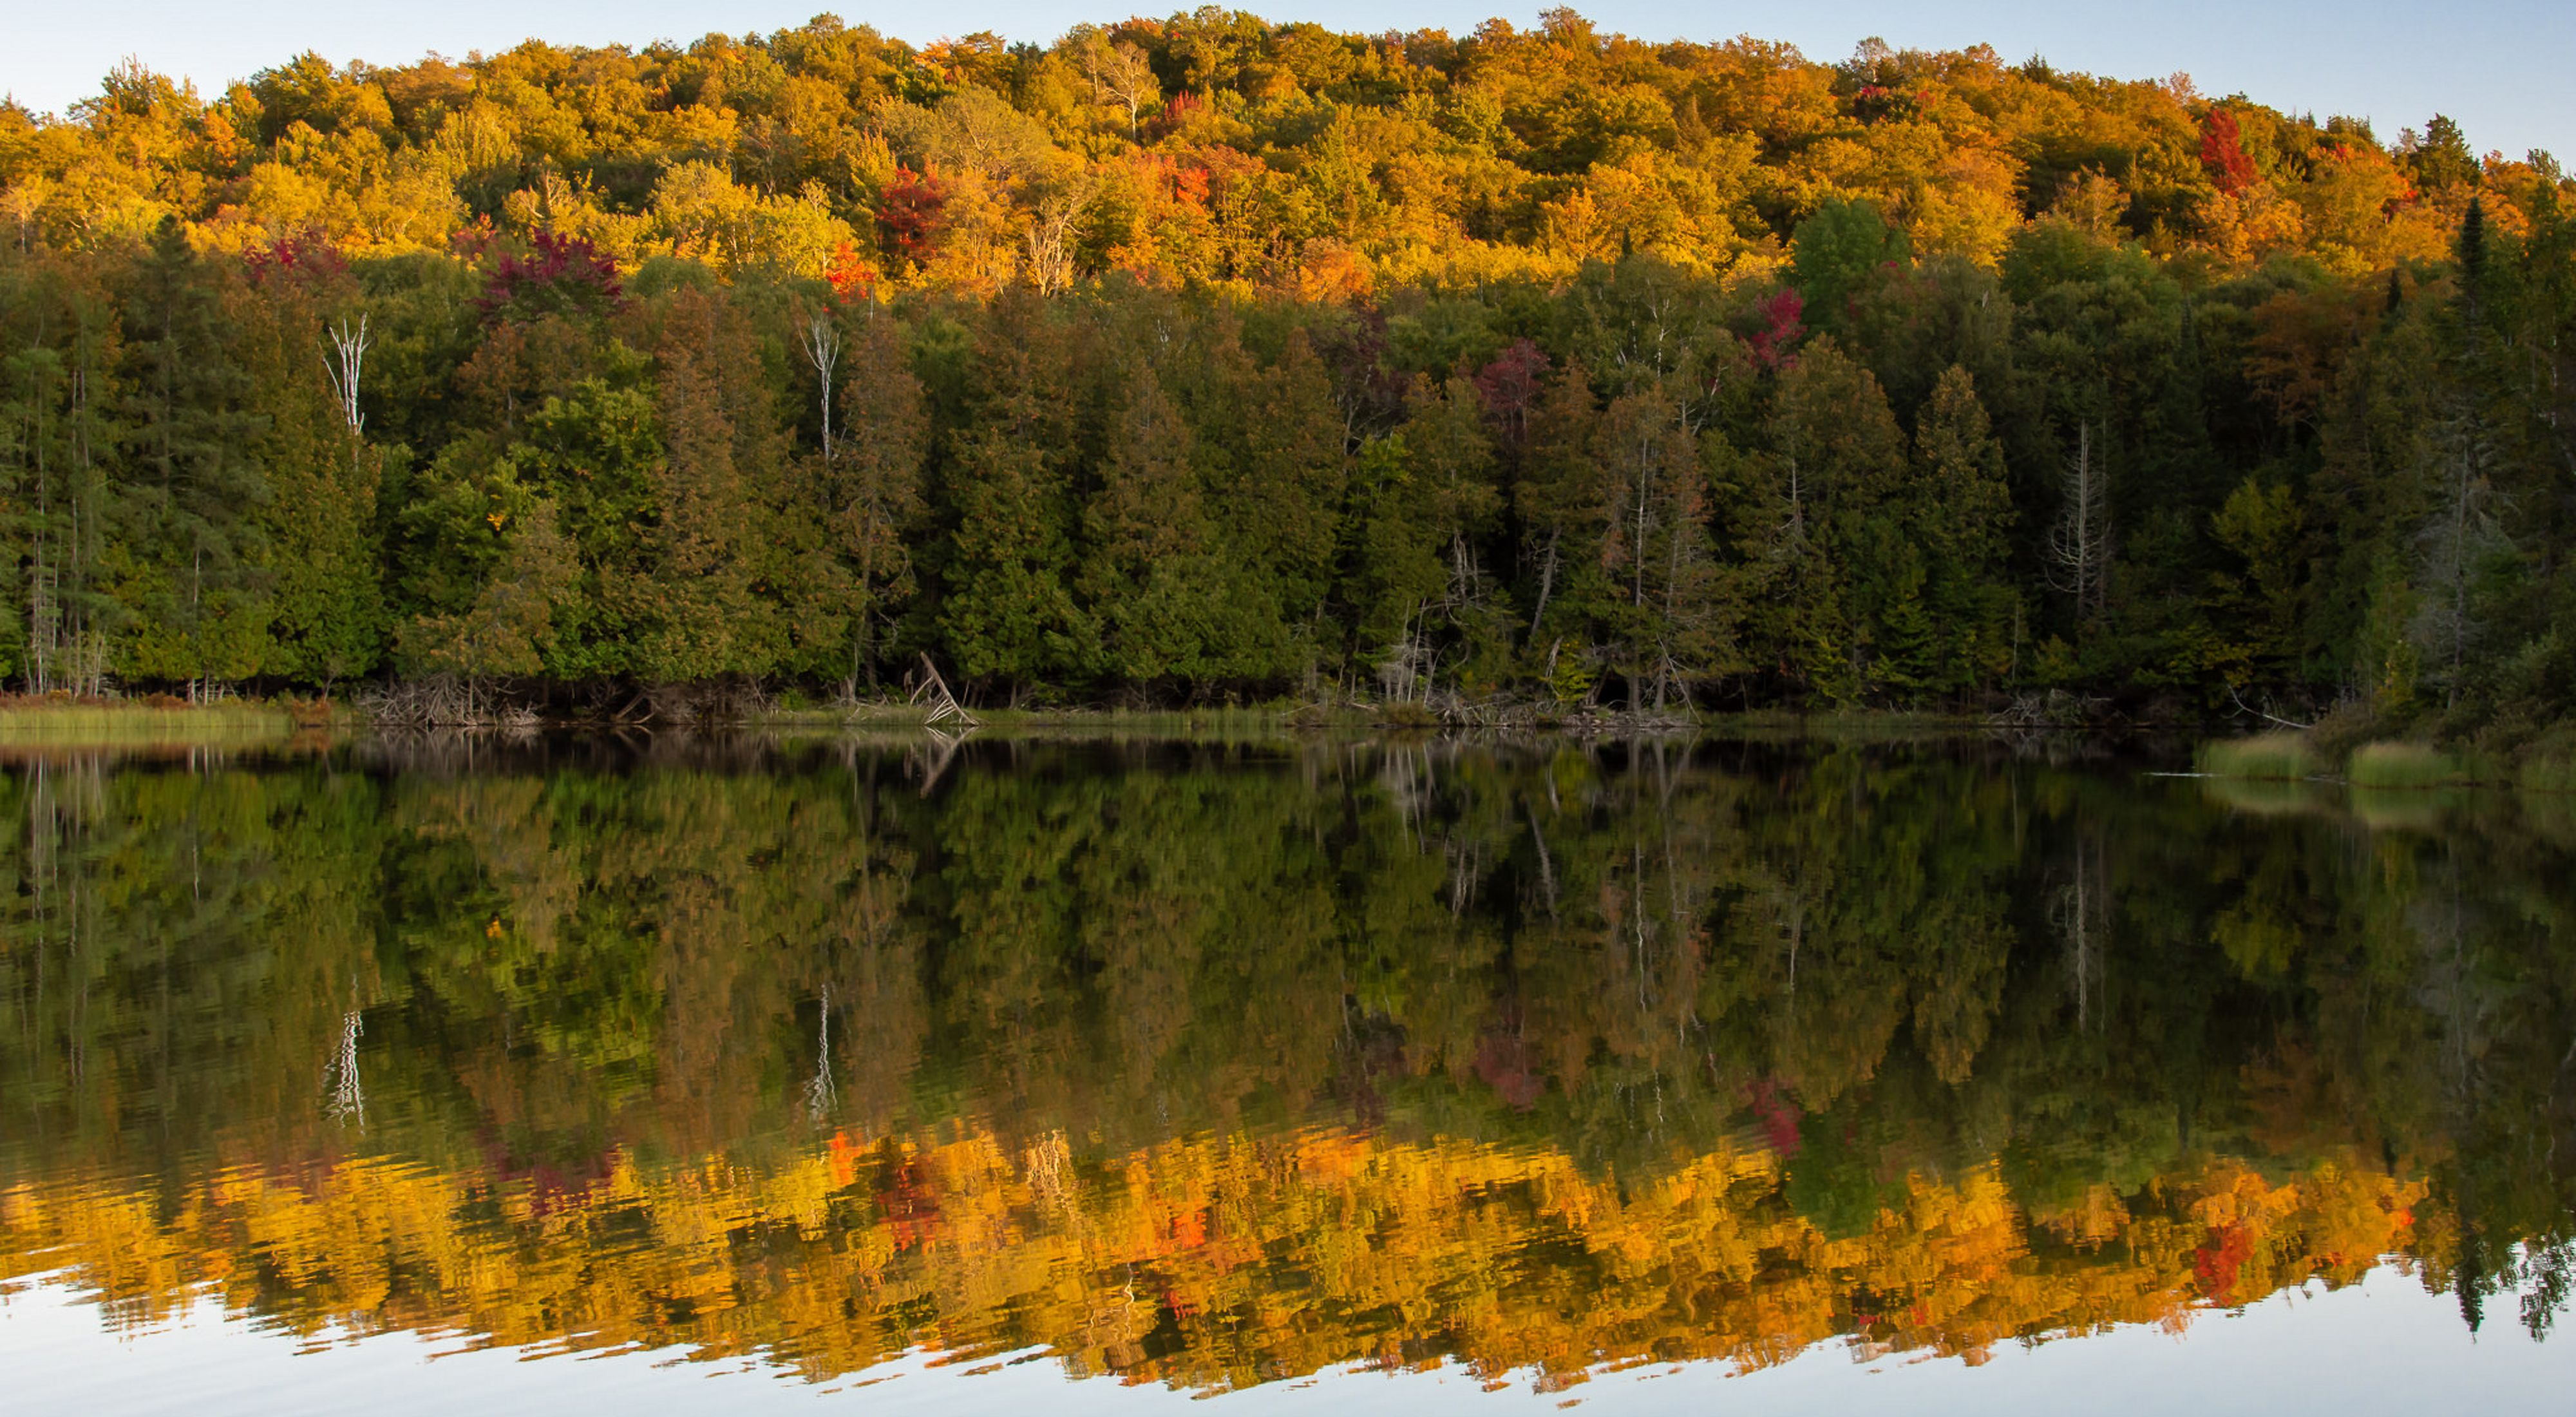 A forest of trees in full fall color are reflected like a mirror in a lake in the foreground.